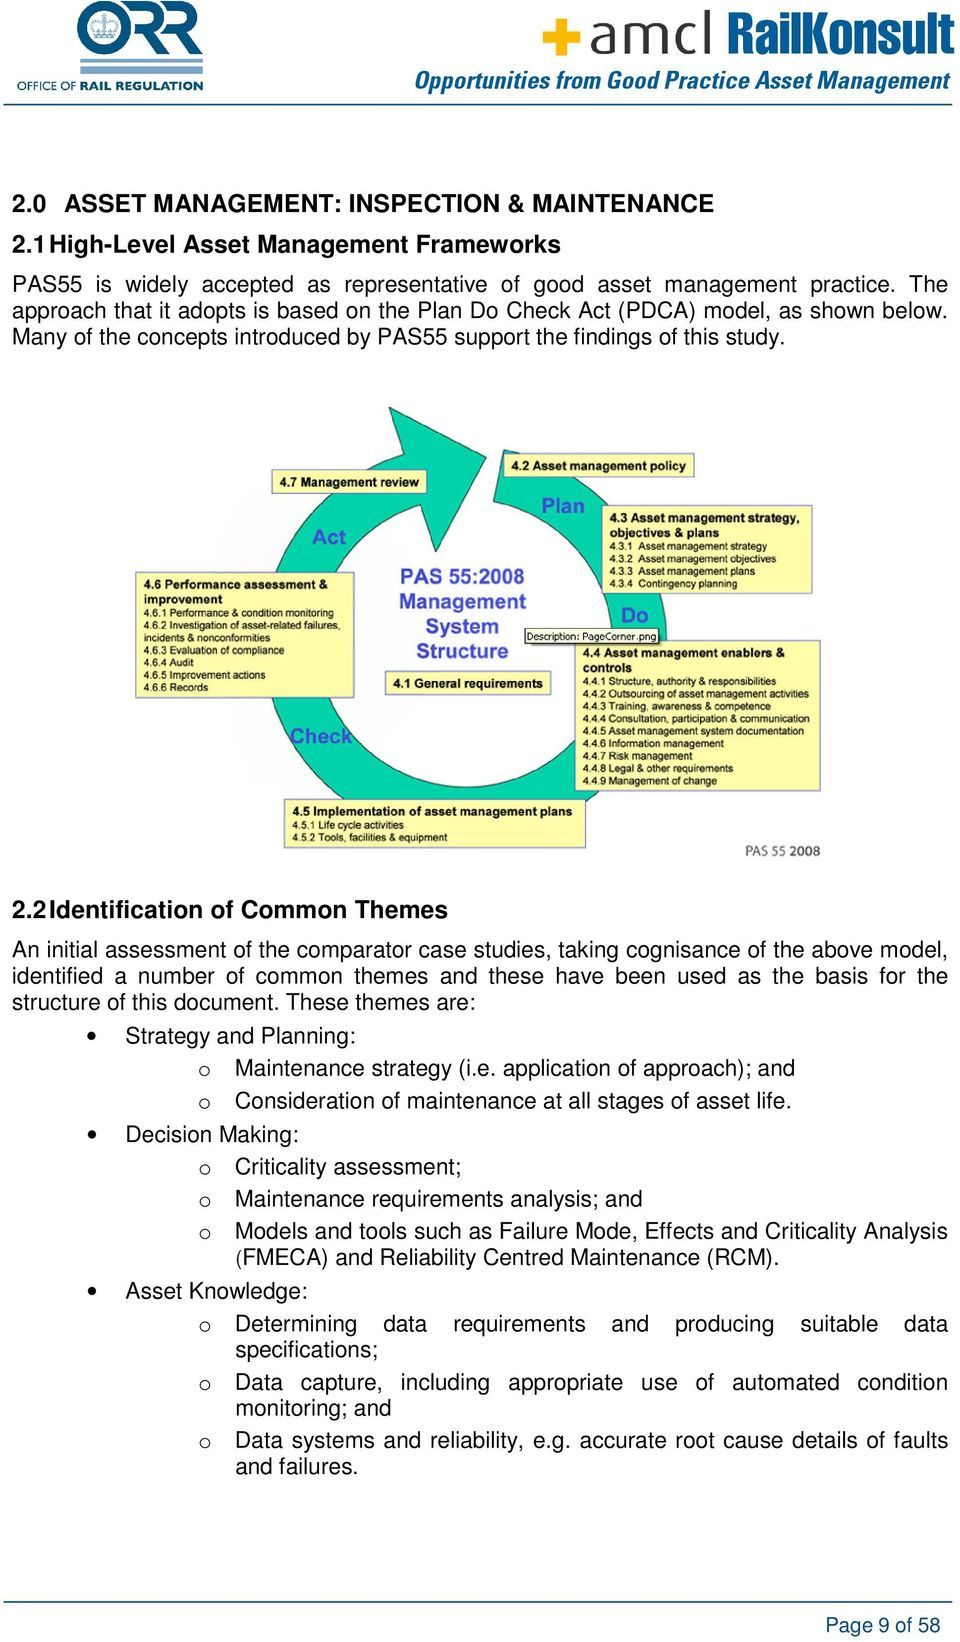 2 Identification of Common Themes An initial assessment of the comparator case studies, taking cognisance of the above model, identified a number of common themes and these have been used as the